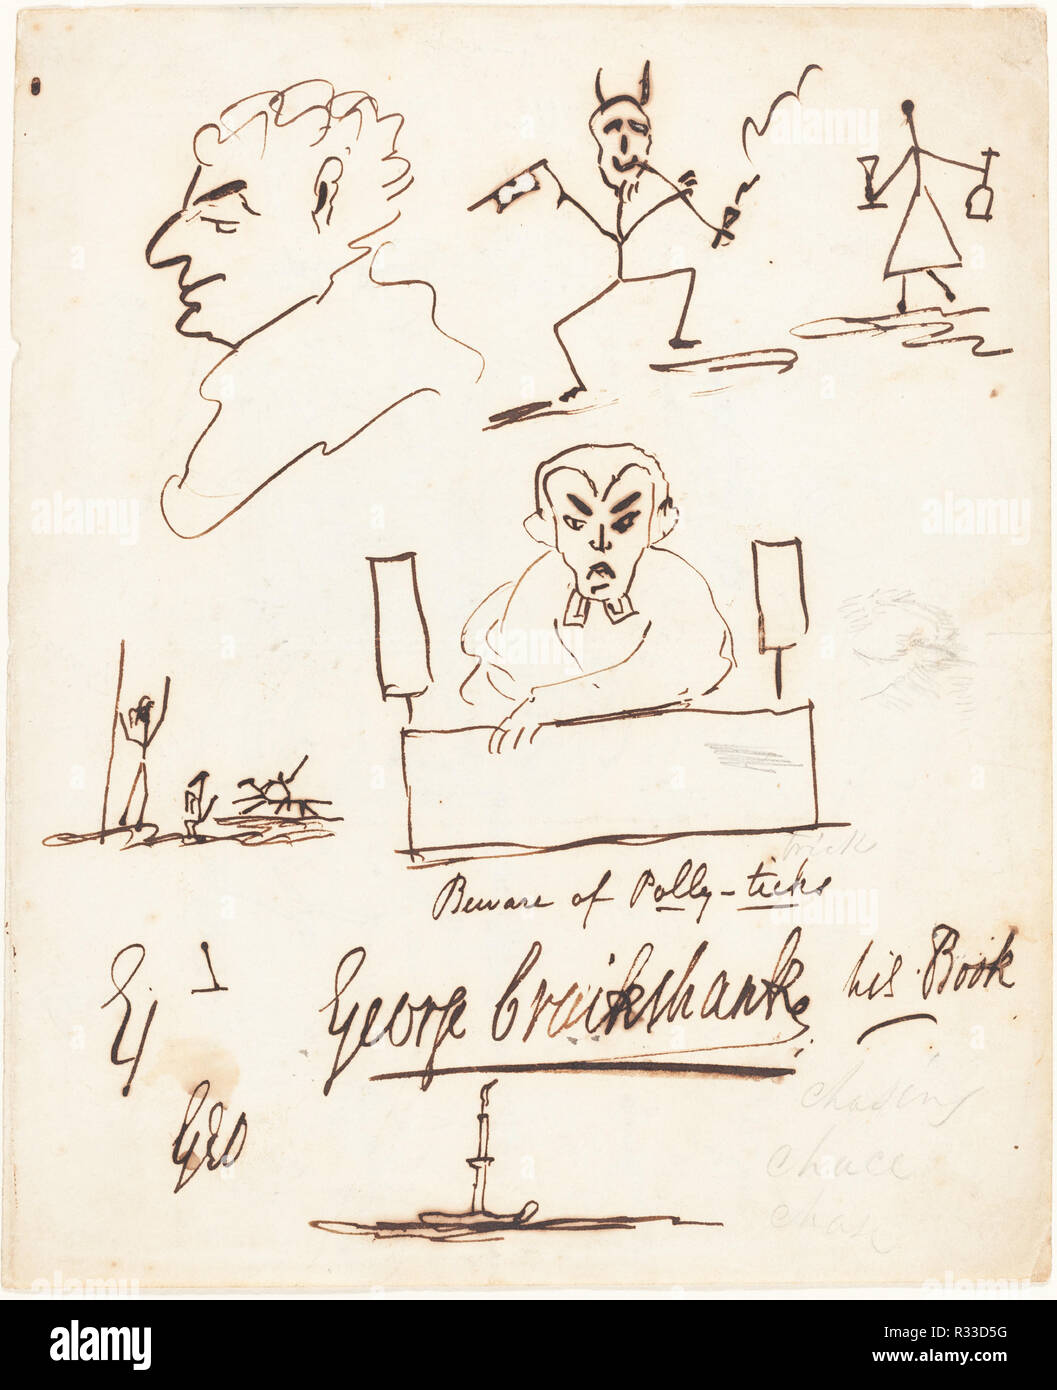 Satirical Sketches. Dimensions: Overall (approximate): 23.1 x 19 cm (9 1/8 x 7 1/2 in.)  support: 40.7 x 30.5 cm (16 x 12 in.). Medium: pen and brown ink and graphite. Museum: National Gallery of Art, Washington DC. Author: George Cruikshank. Stock Photo